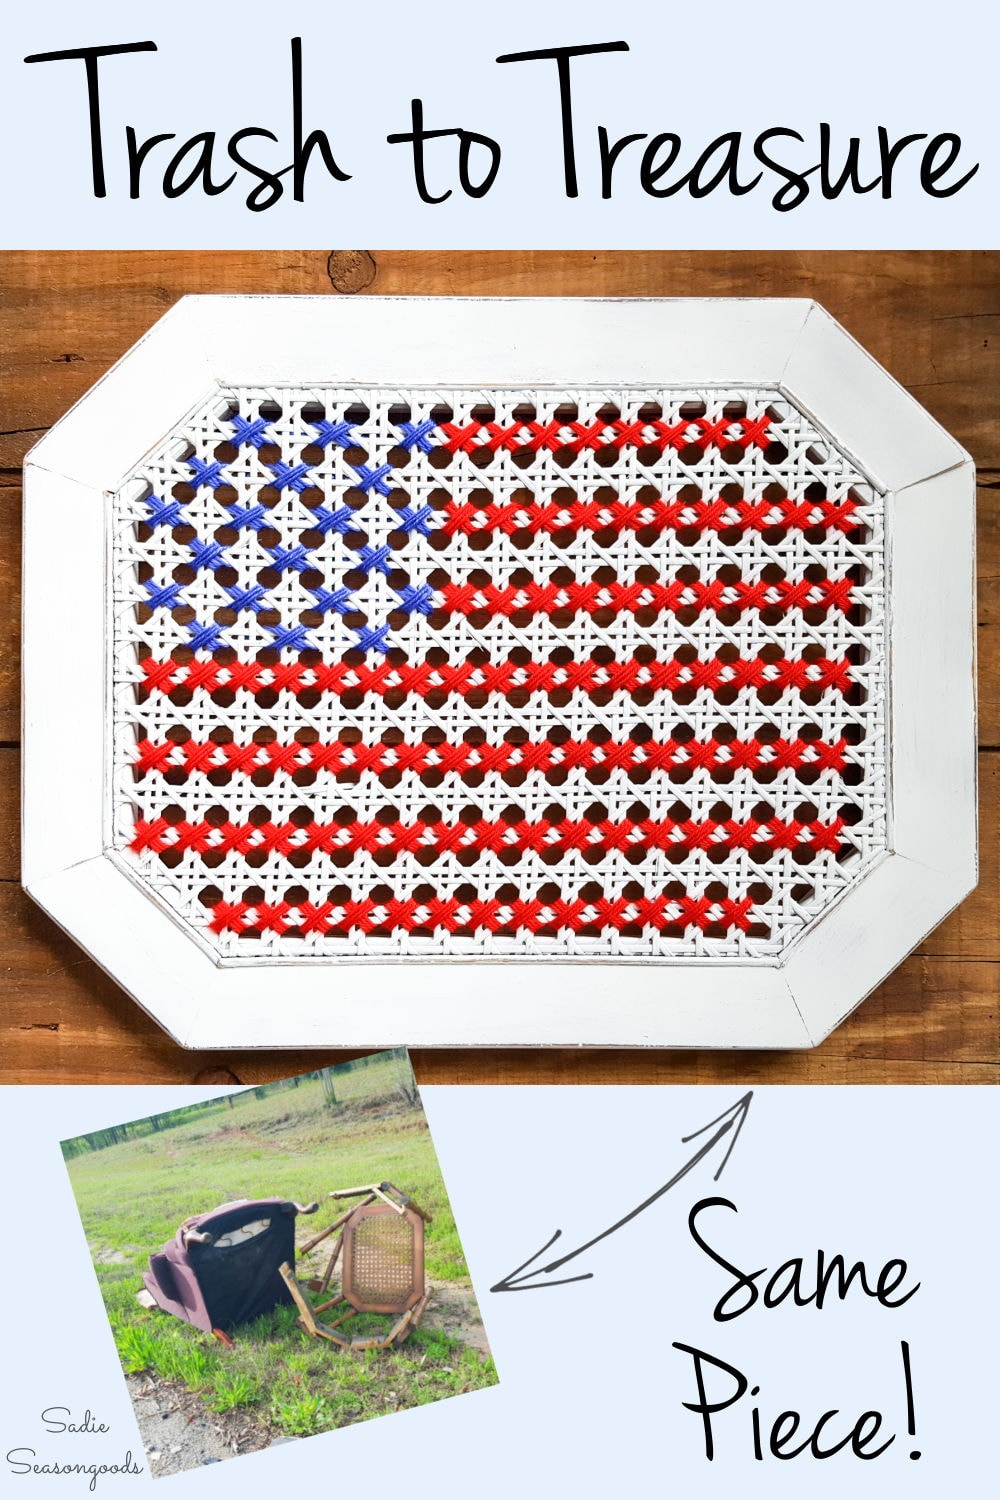 cross stitching the American flag on cane